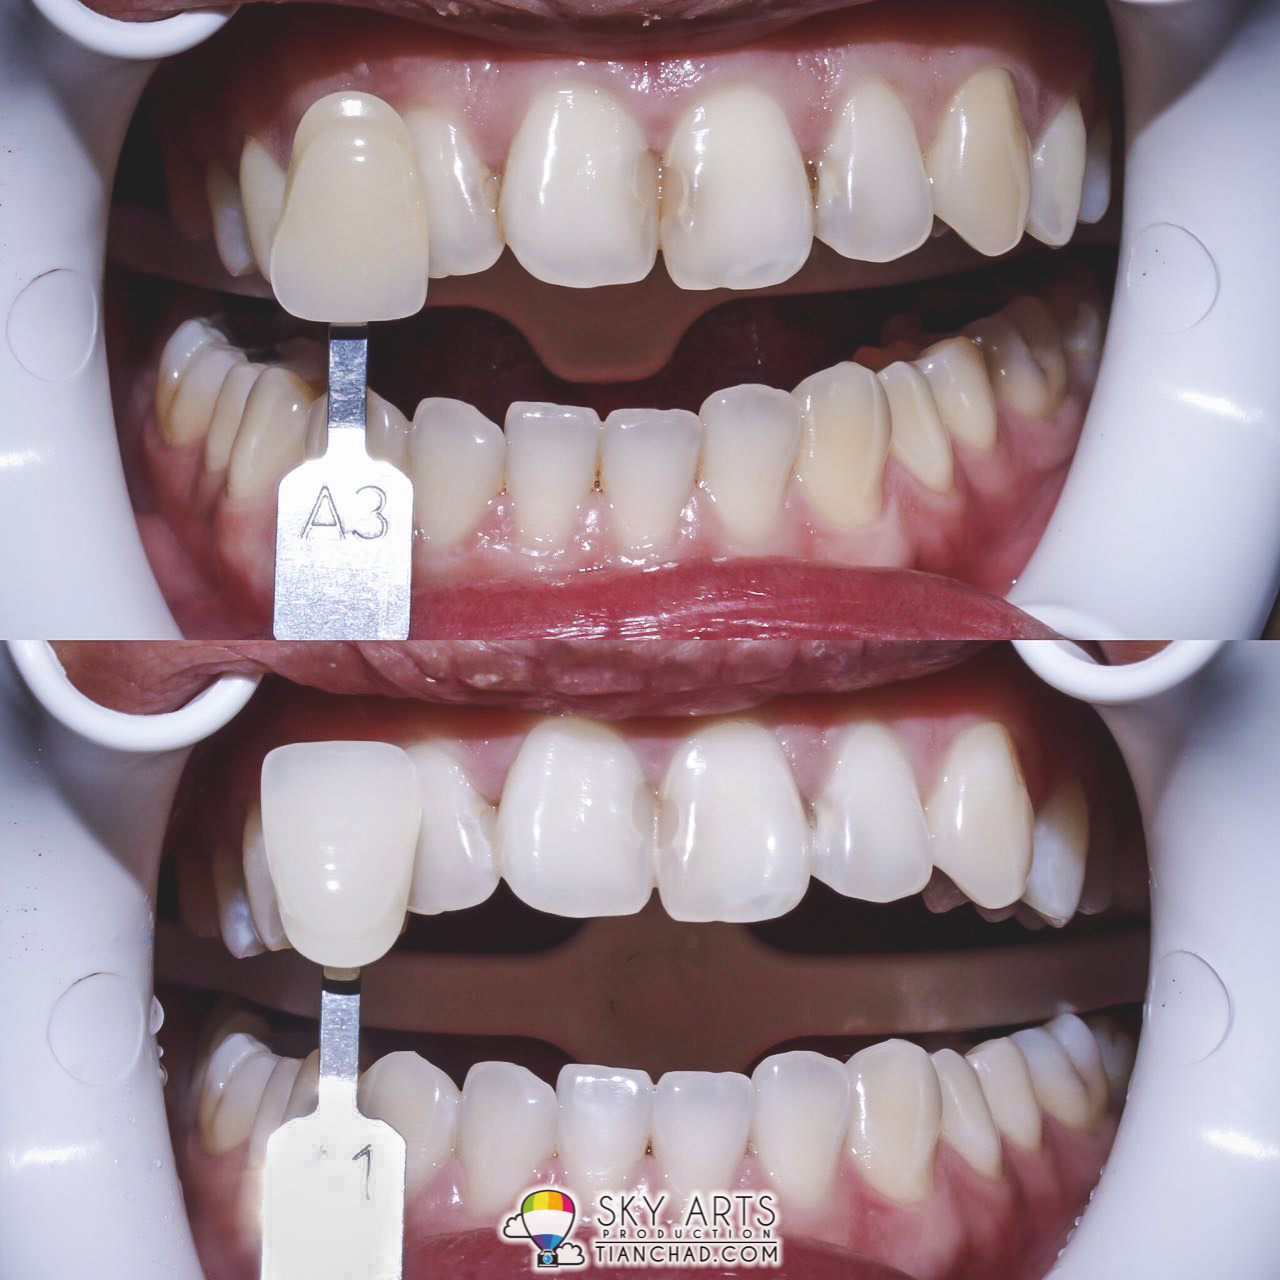 How Much Does Laser Teeth Whitening Cost In South Africa Teethwalls